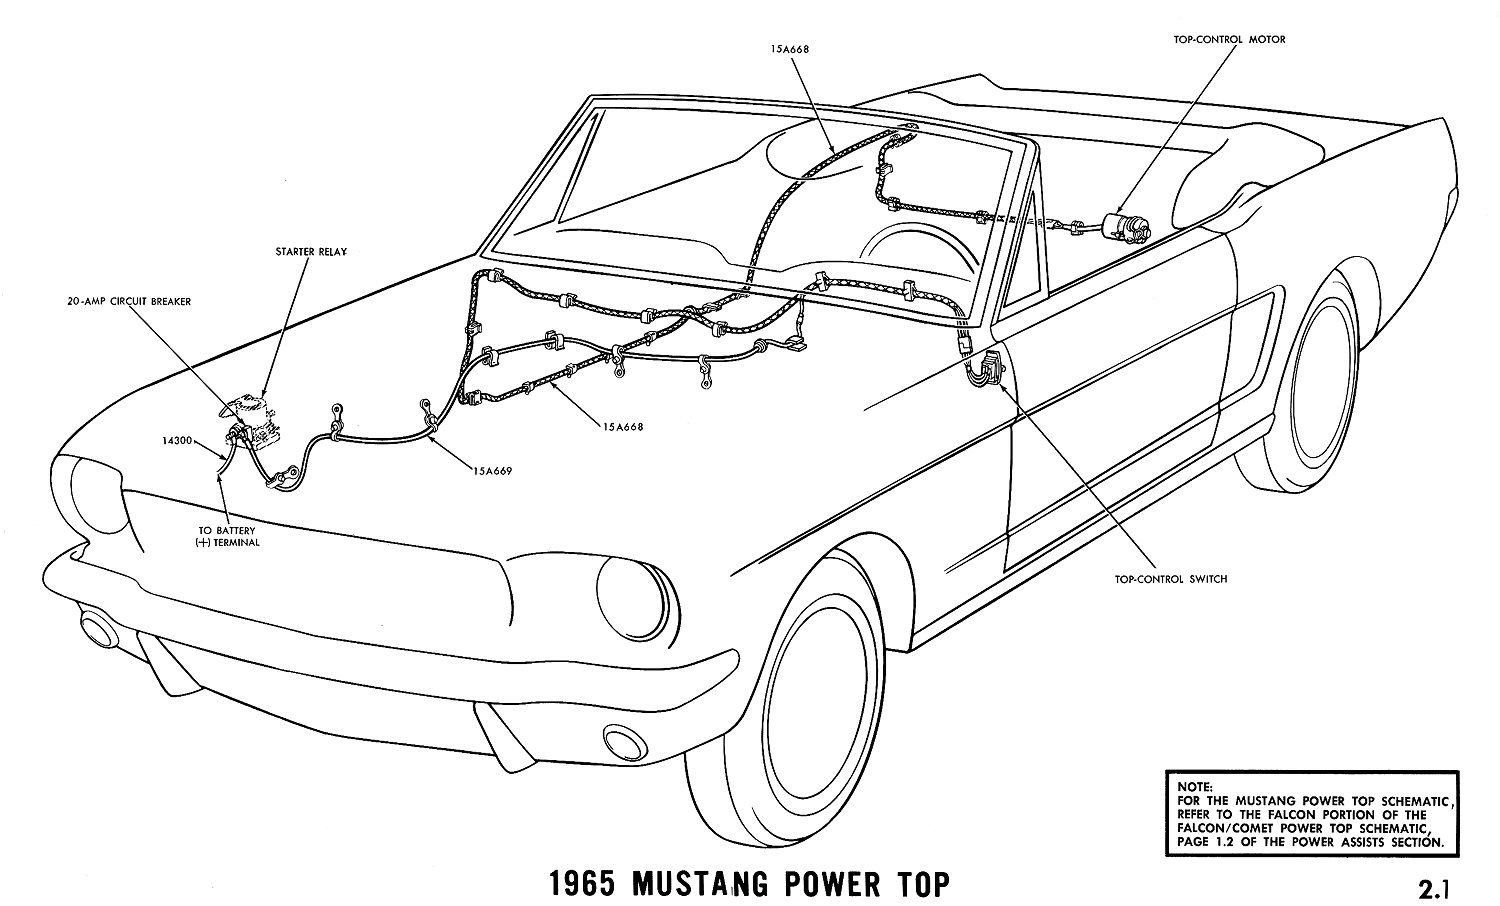 1965j 1965 mustang wiring diagrams average joe restoration 1965 mustang alternator wiring diagram at bakdesigns.co